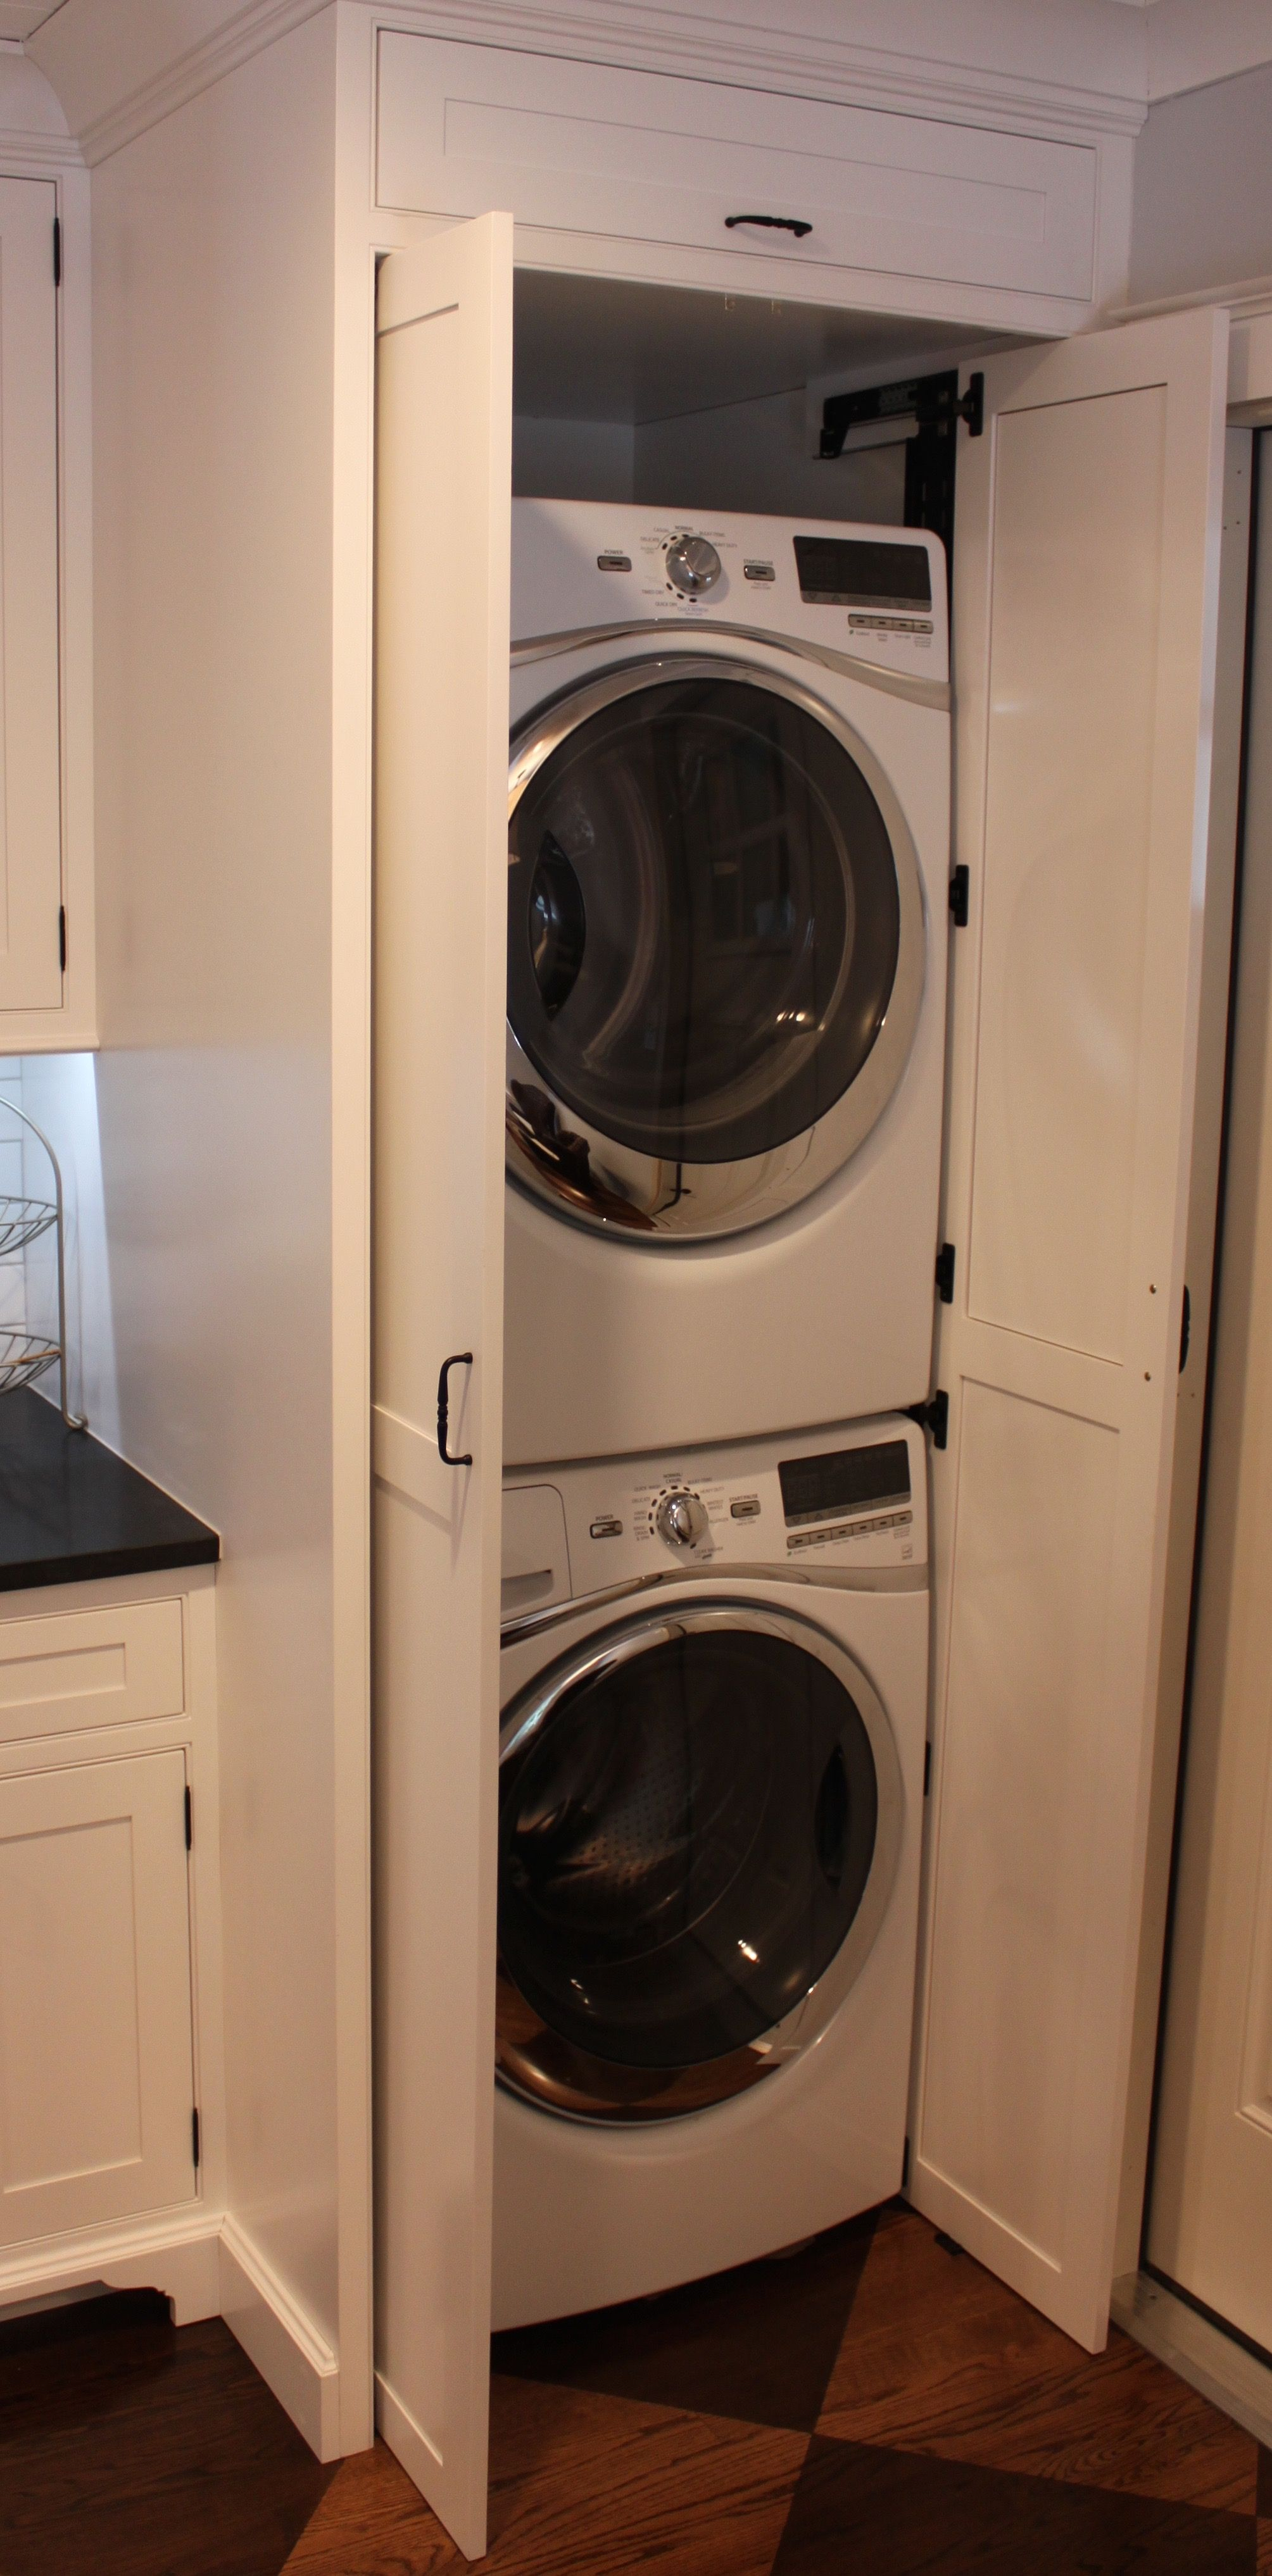 In Kitchen Laundry Cabinet With Pocket Doors Washer Dryer Laundry Room Laundry Room Laundry Room Organization